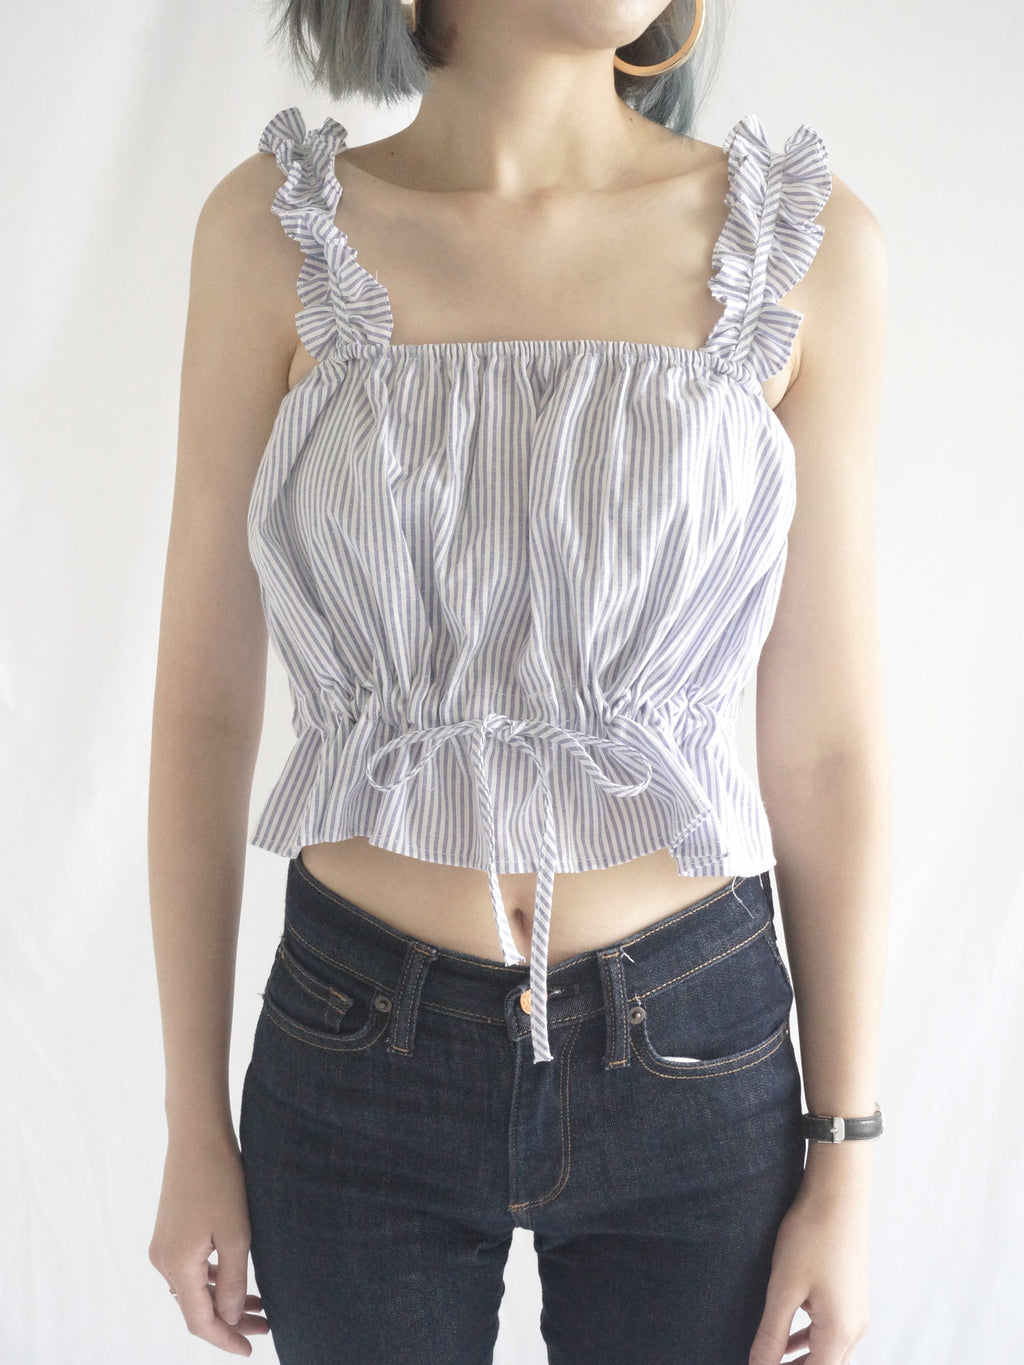 Elle Ruffles Top - Stripes